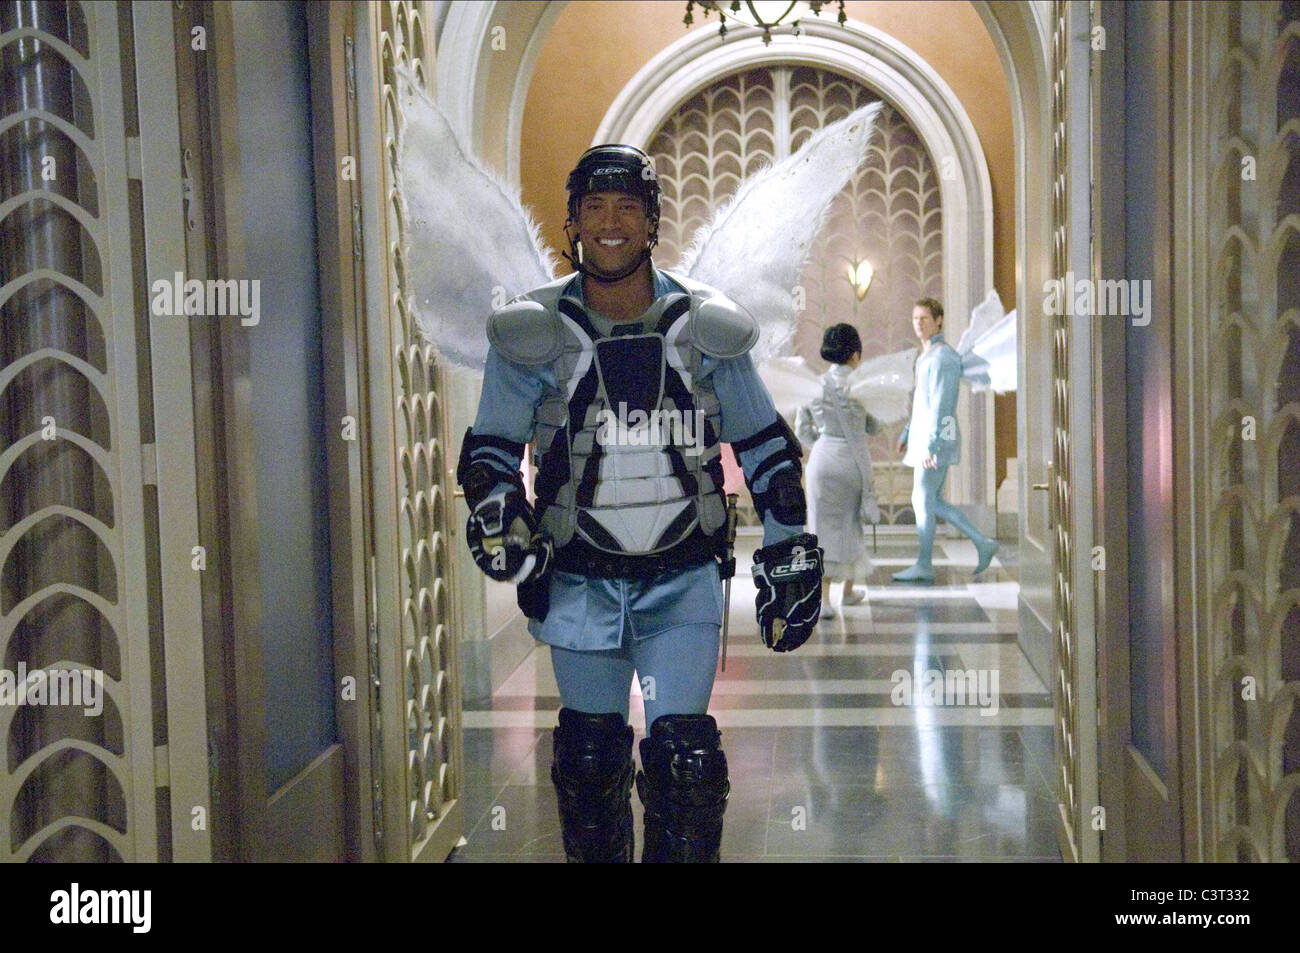 Tooth Fairy Dwayne Johnson High Resolution Stock Photography And Images Alamy